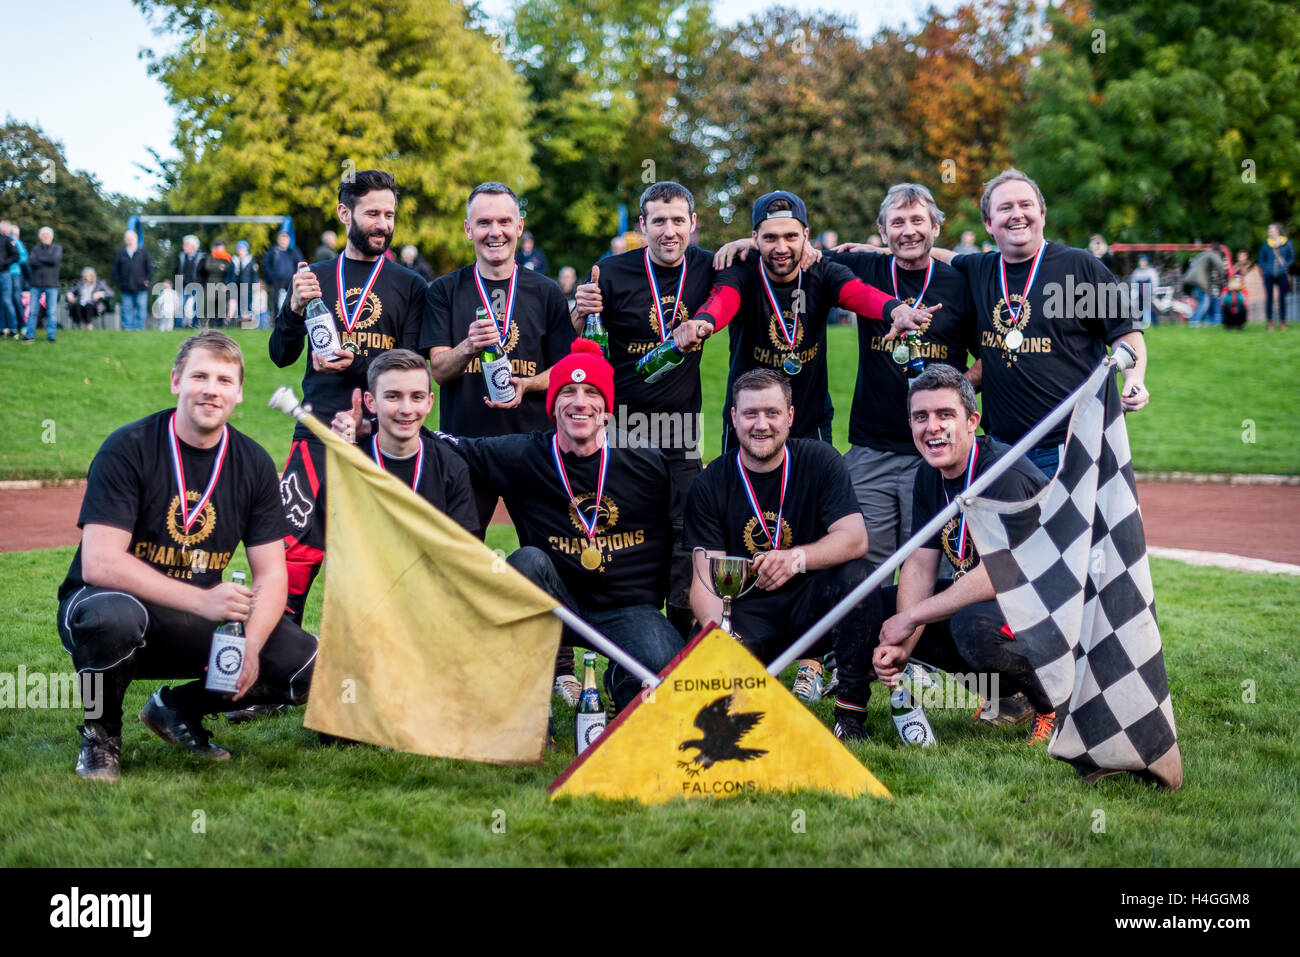 Edinburgh, UK. 16th Oct, 2016. Edinburgh Falcons Cycling Speedway Club celebrate winning the Northern League for - Stock Image